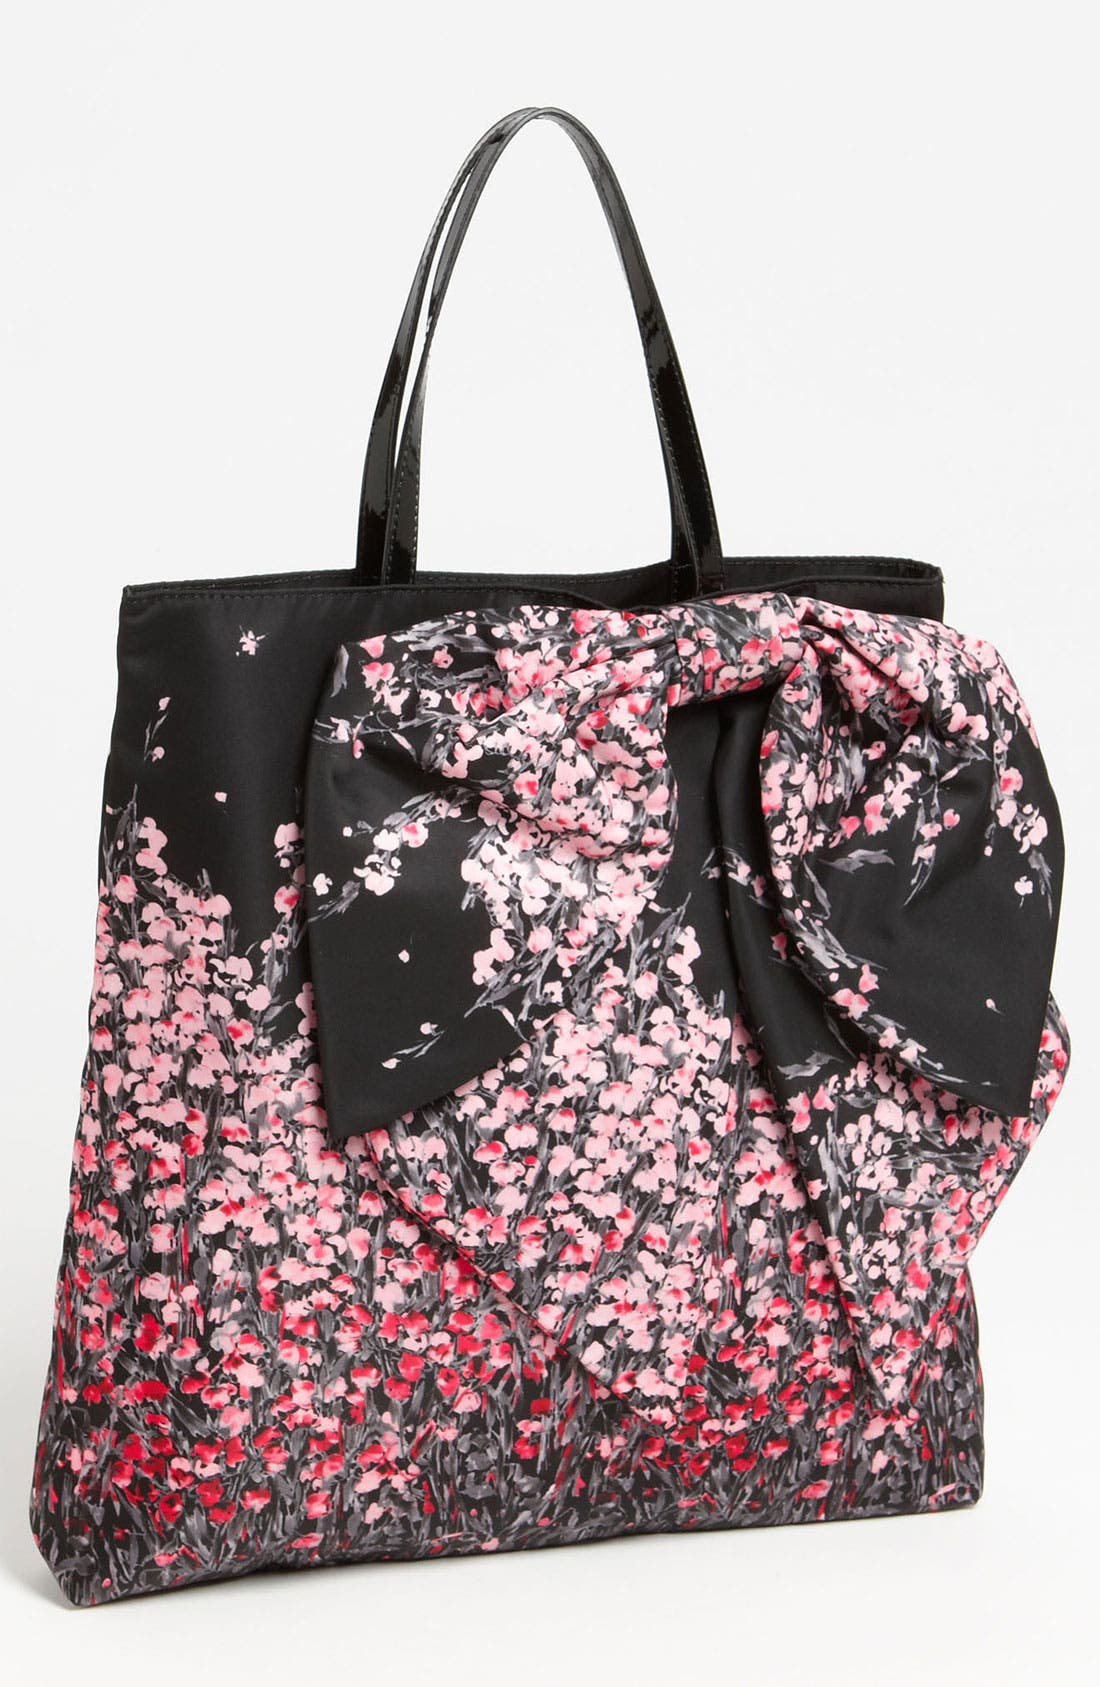 Alternate Image 1 Selected - RED Valentino 'Lily of the Valley' Bow Tote